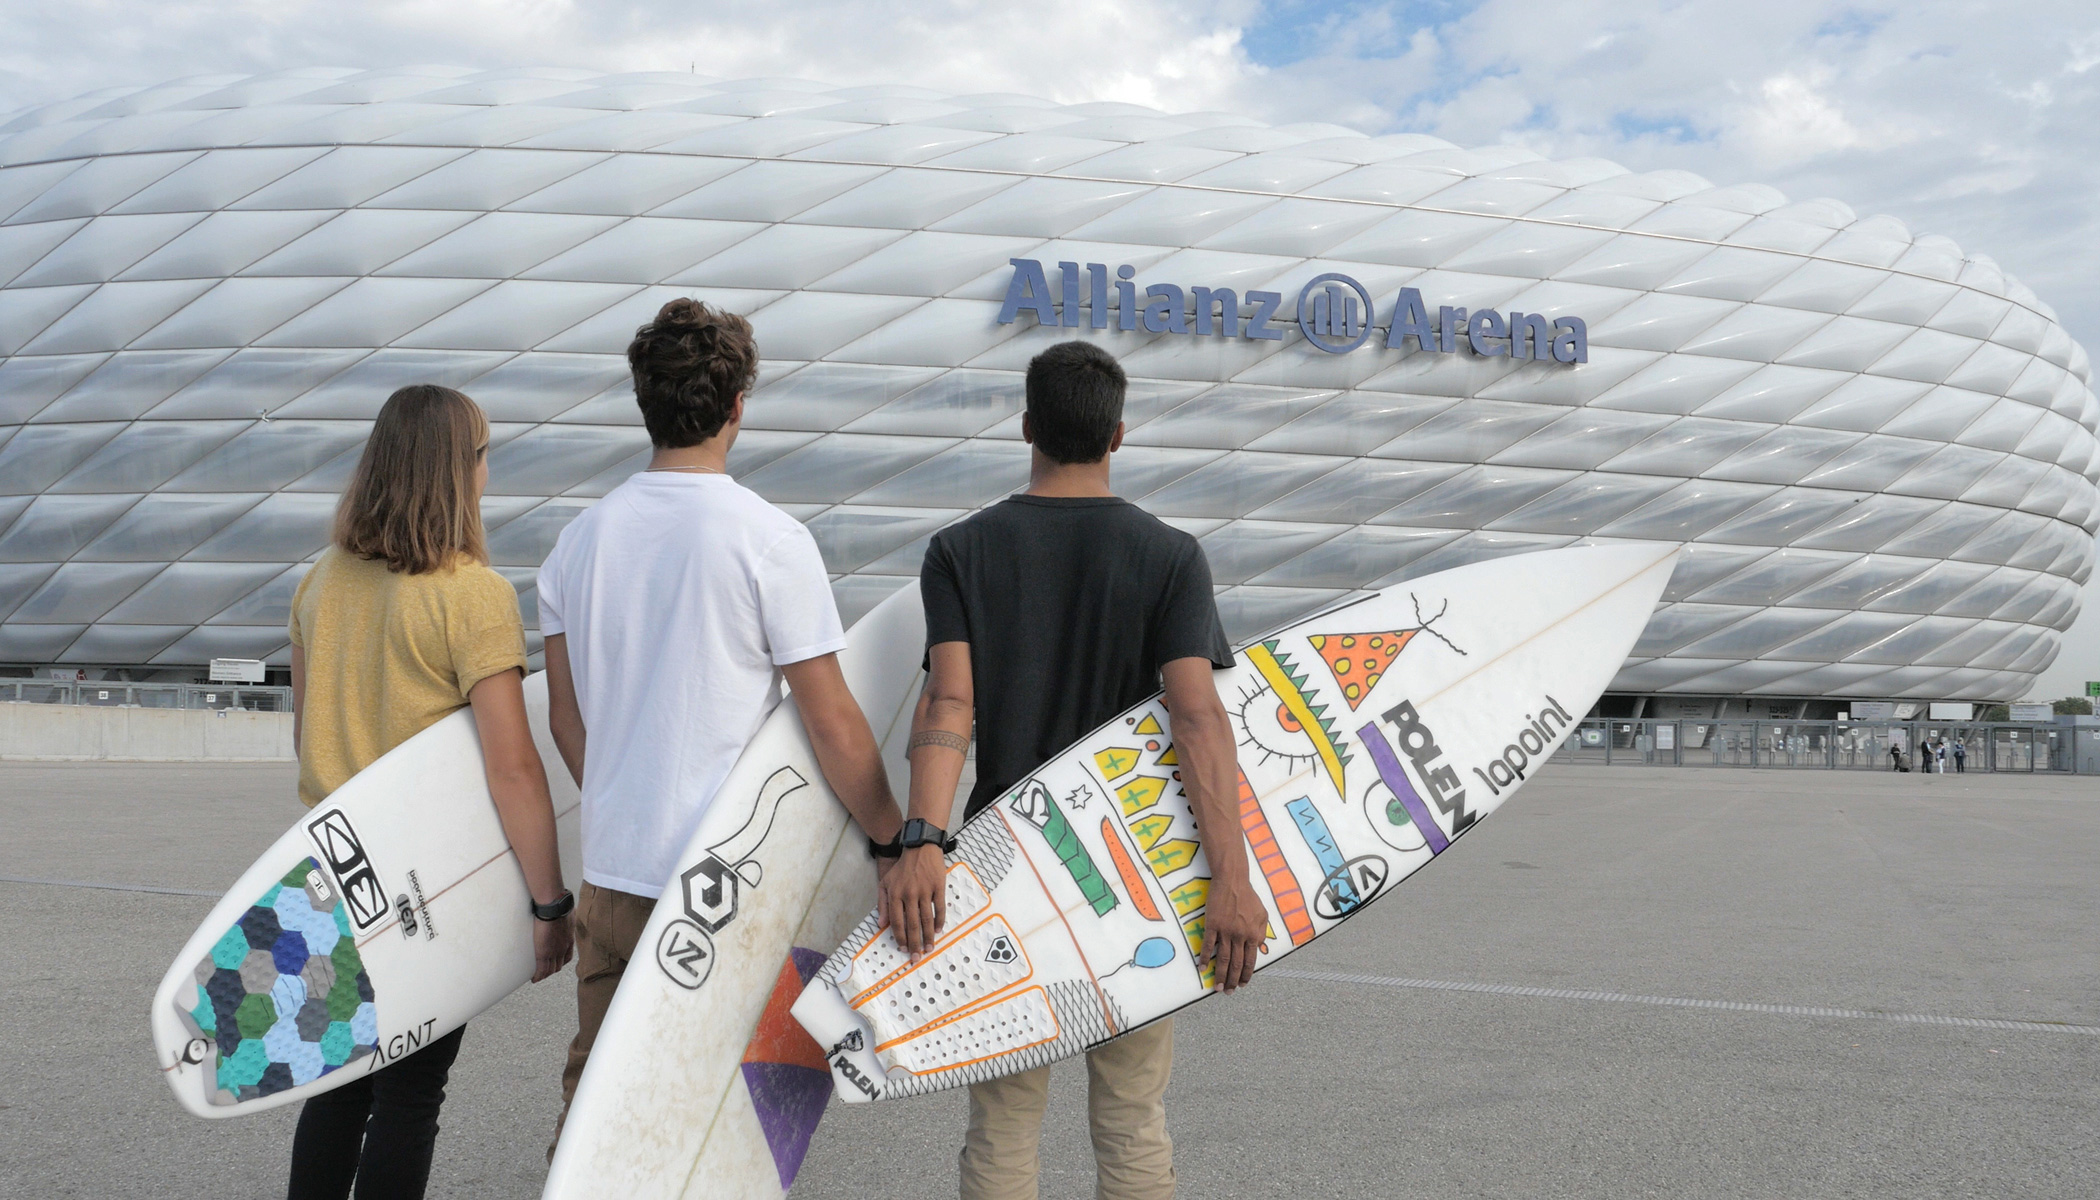 ALLIANZ_MUNICH_BANNER